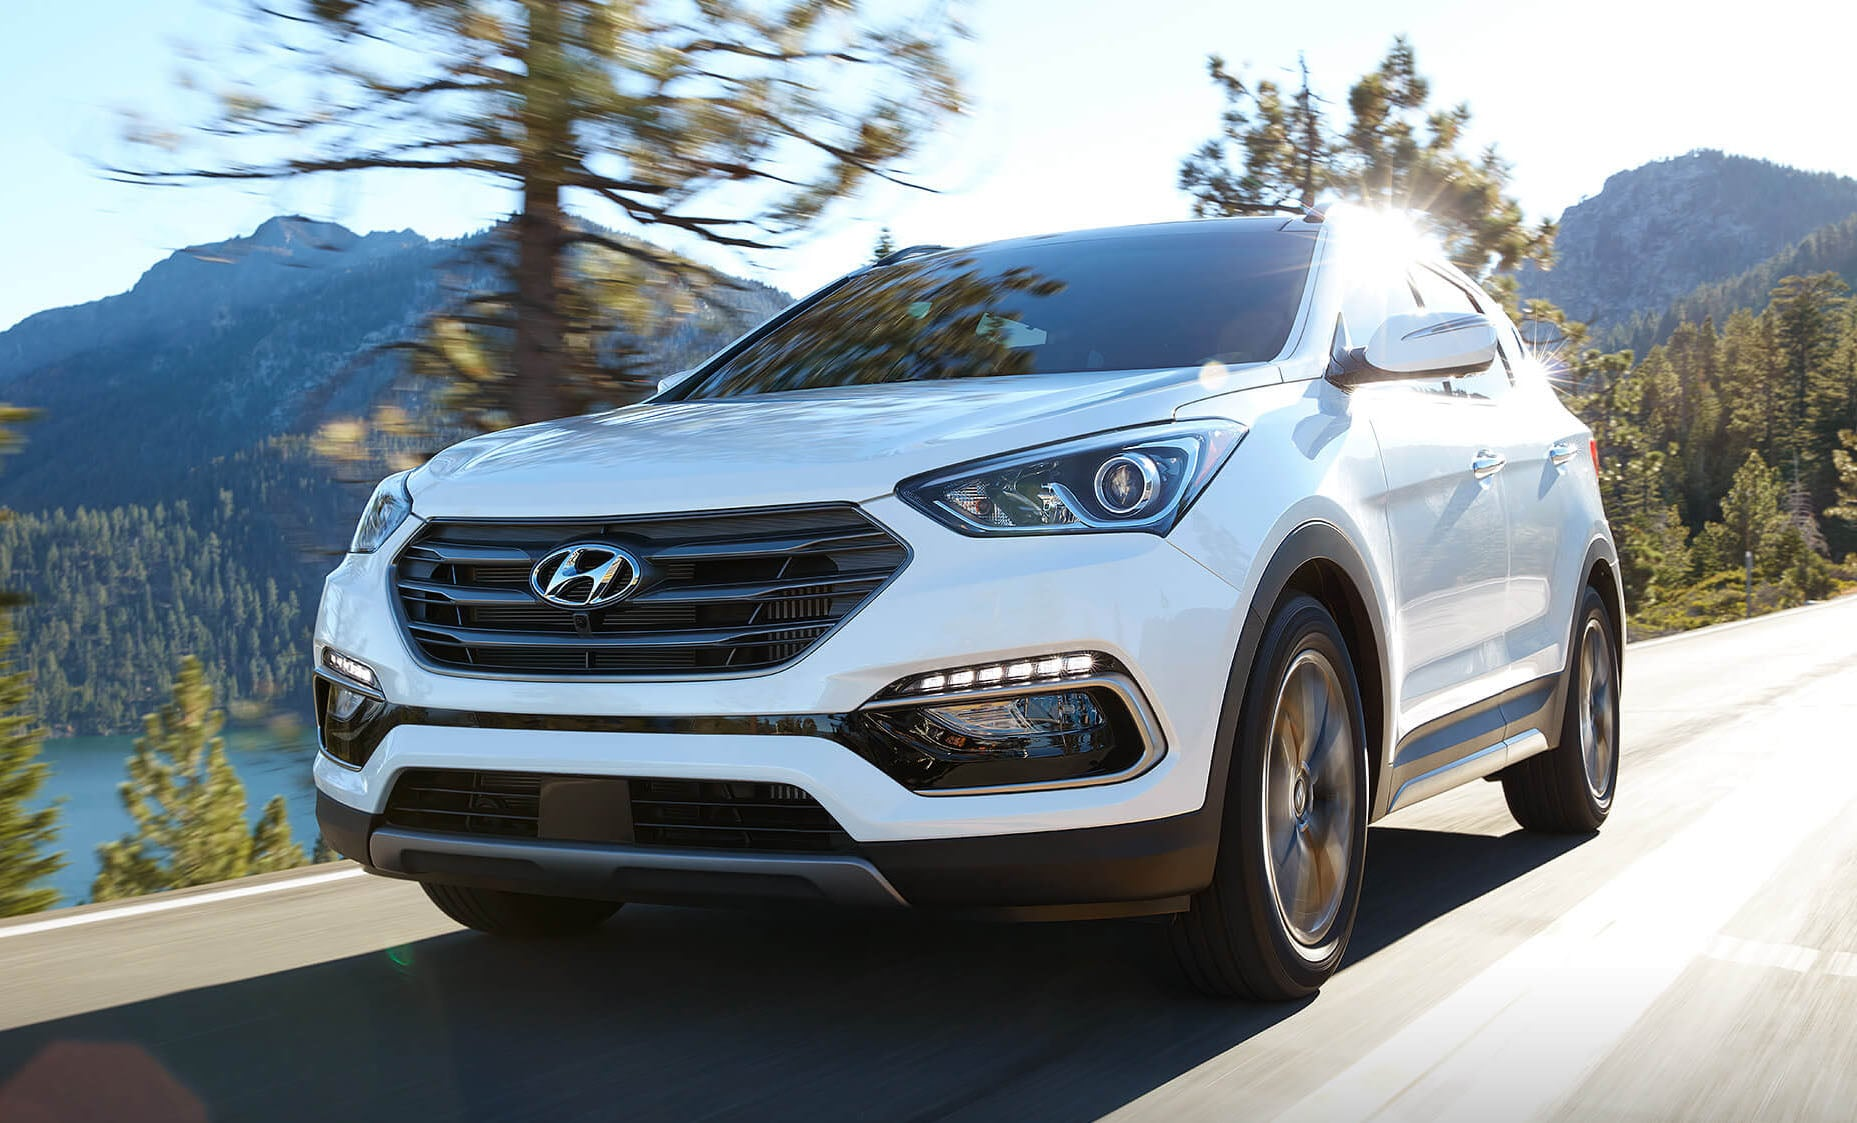 used fe car hyundai for inventory pre sale owned truck santa item national sales se